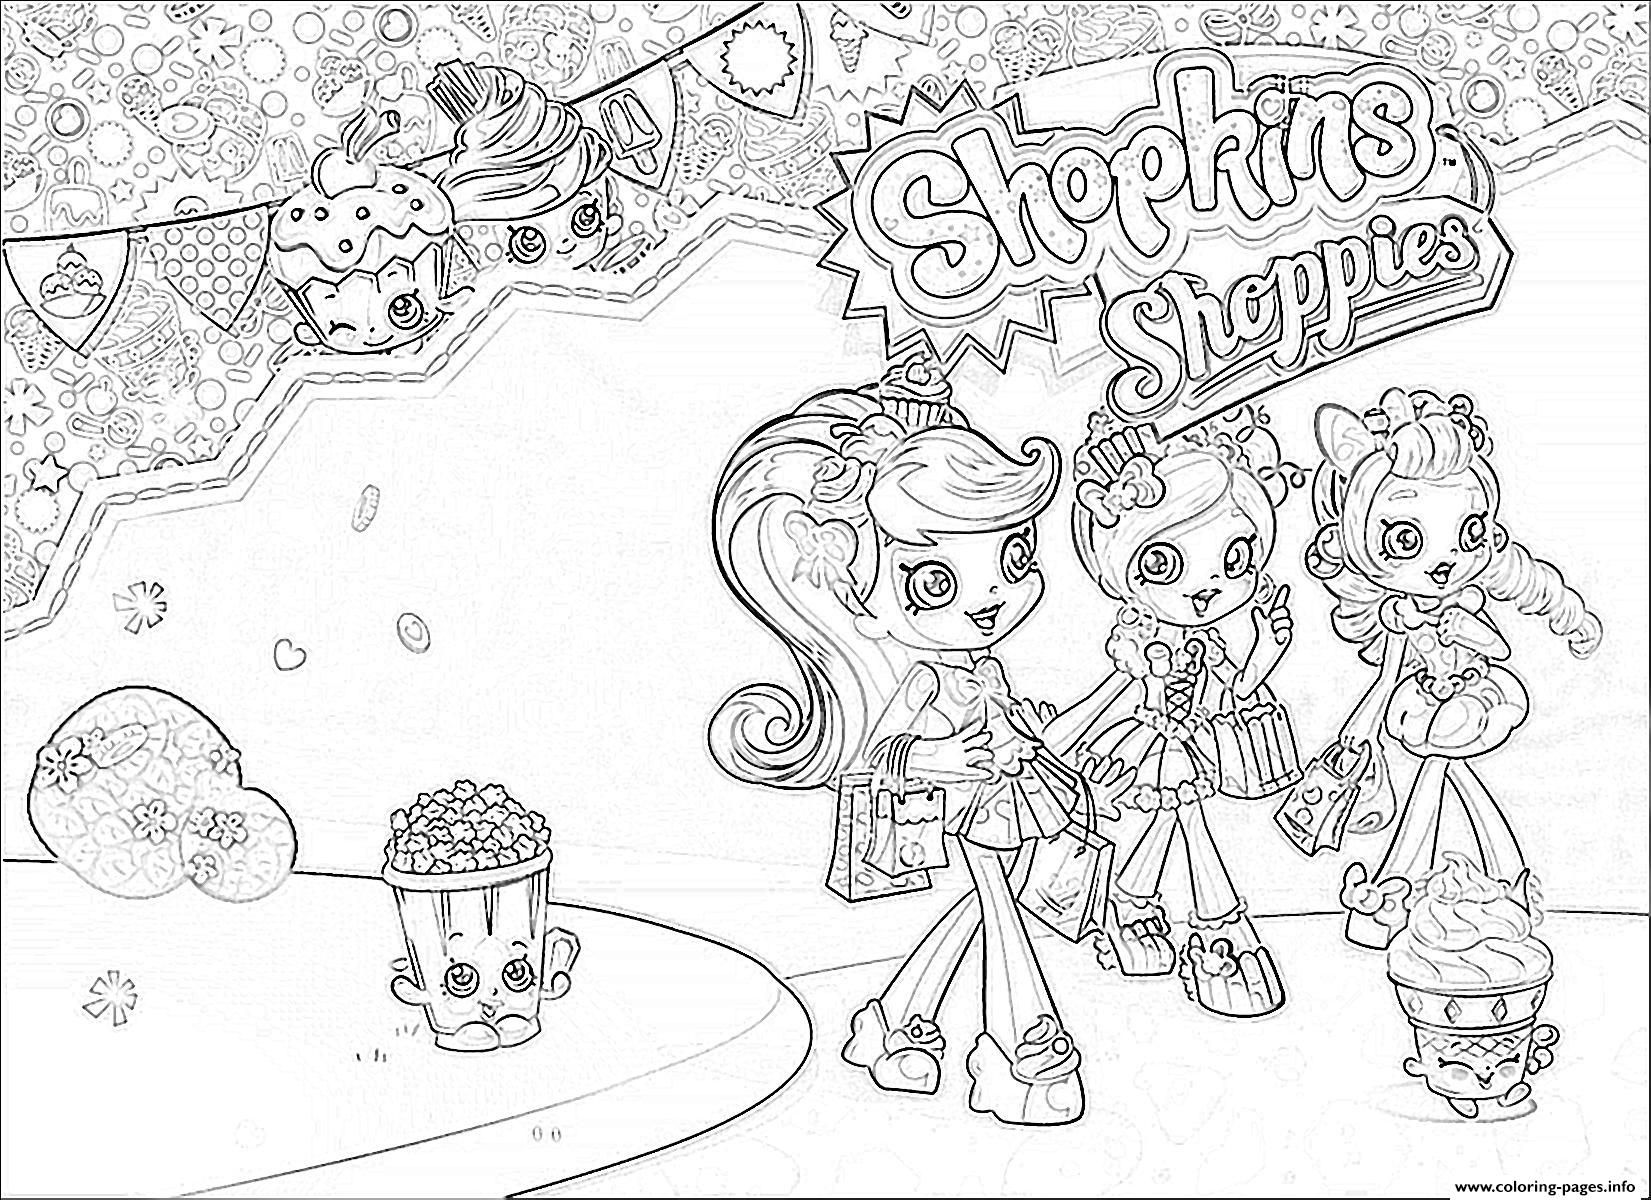 Print Shopkins Shoppies Girls Coloring Pages Shopkins Colouring